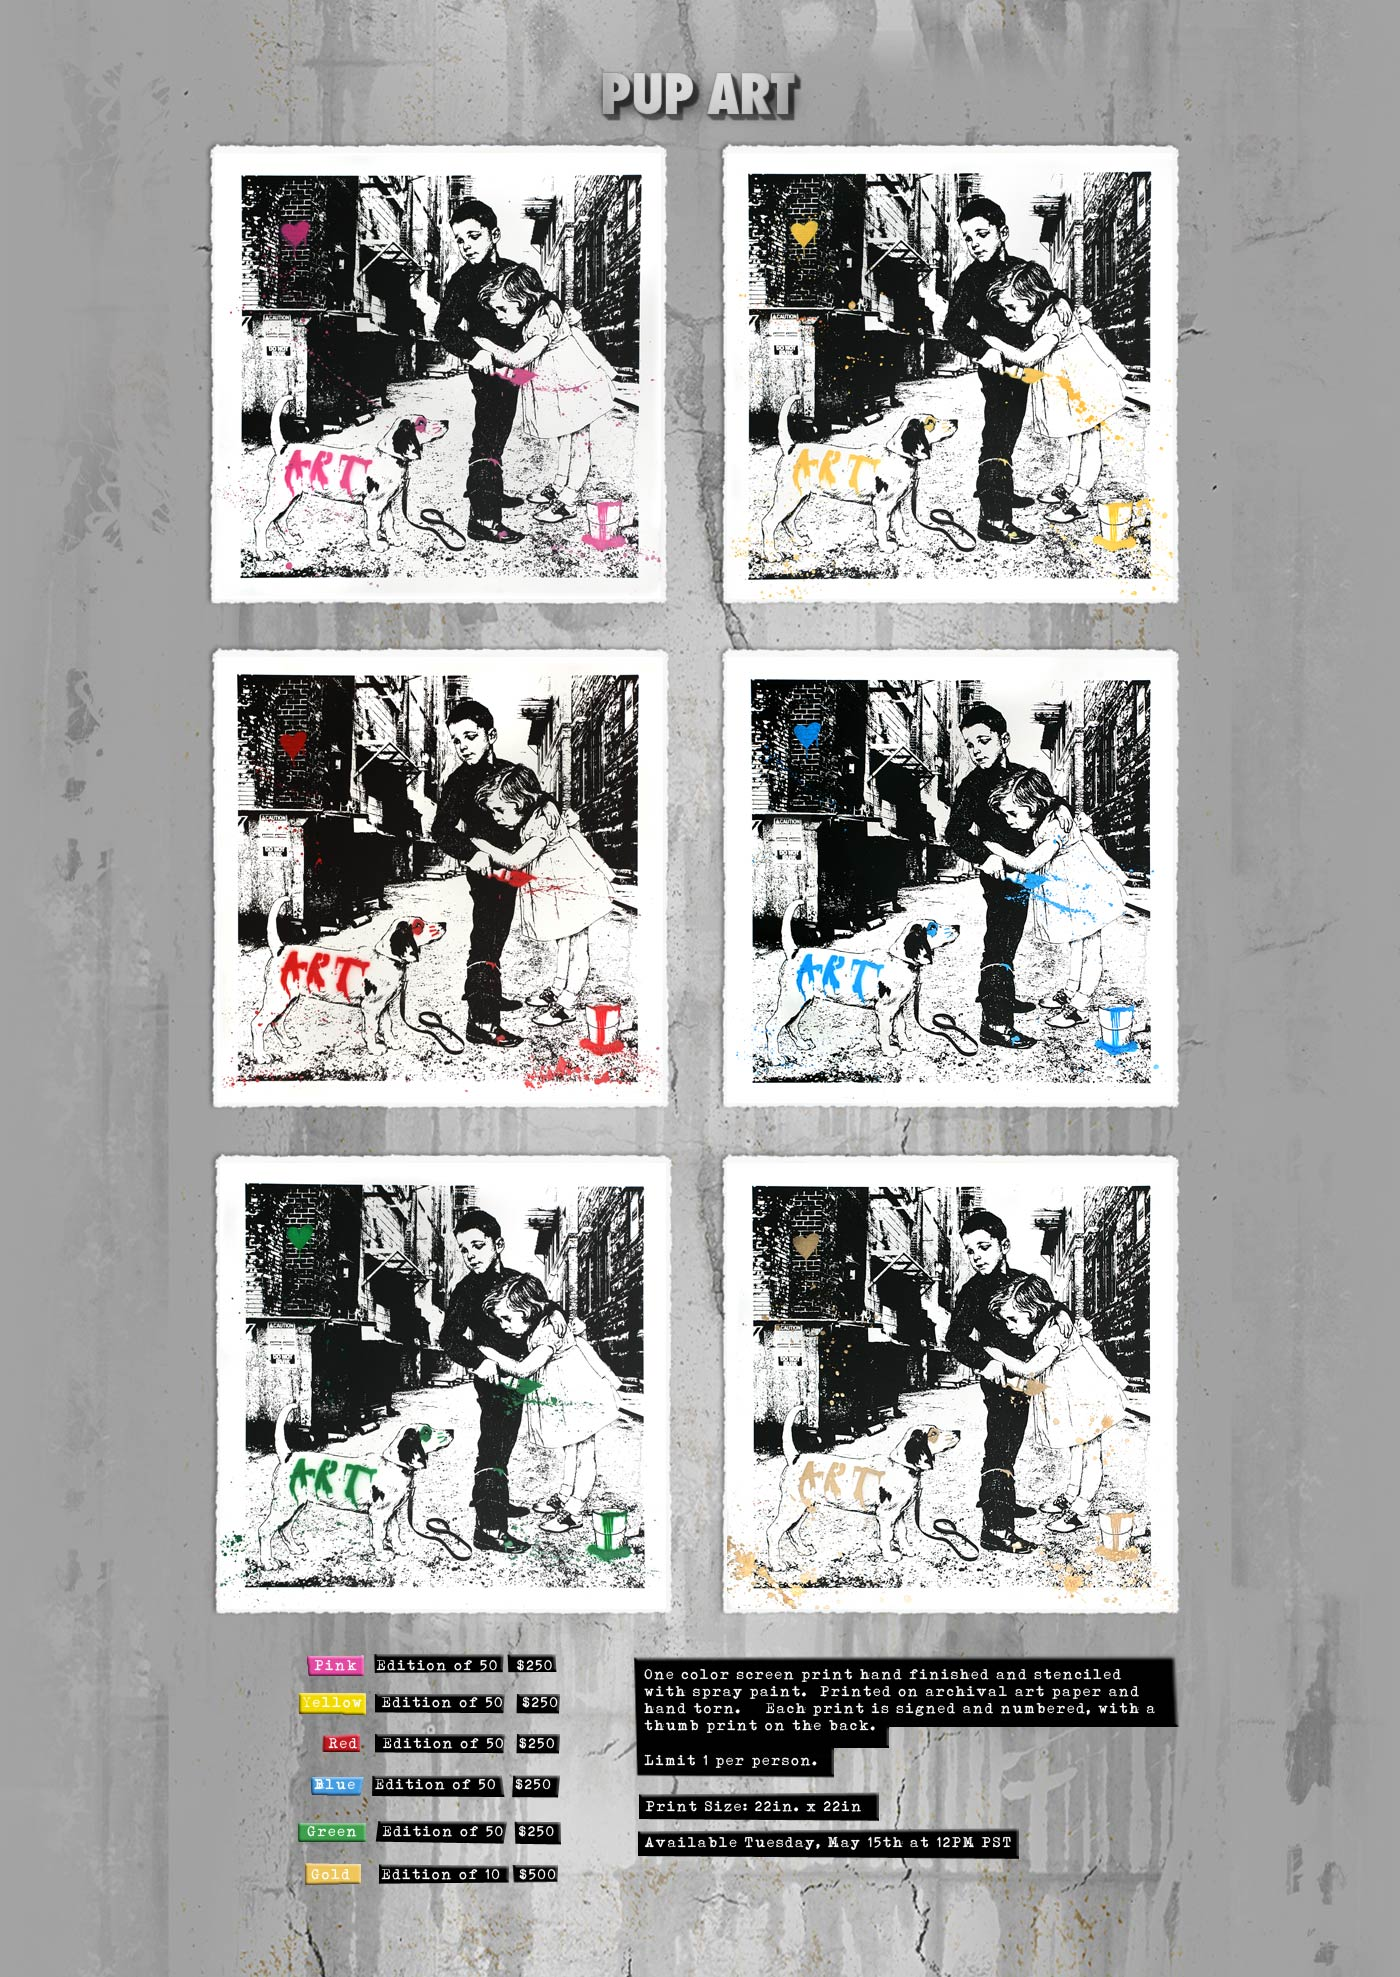 mr brainwash pup art